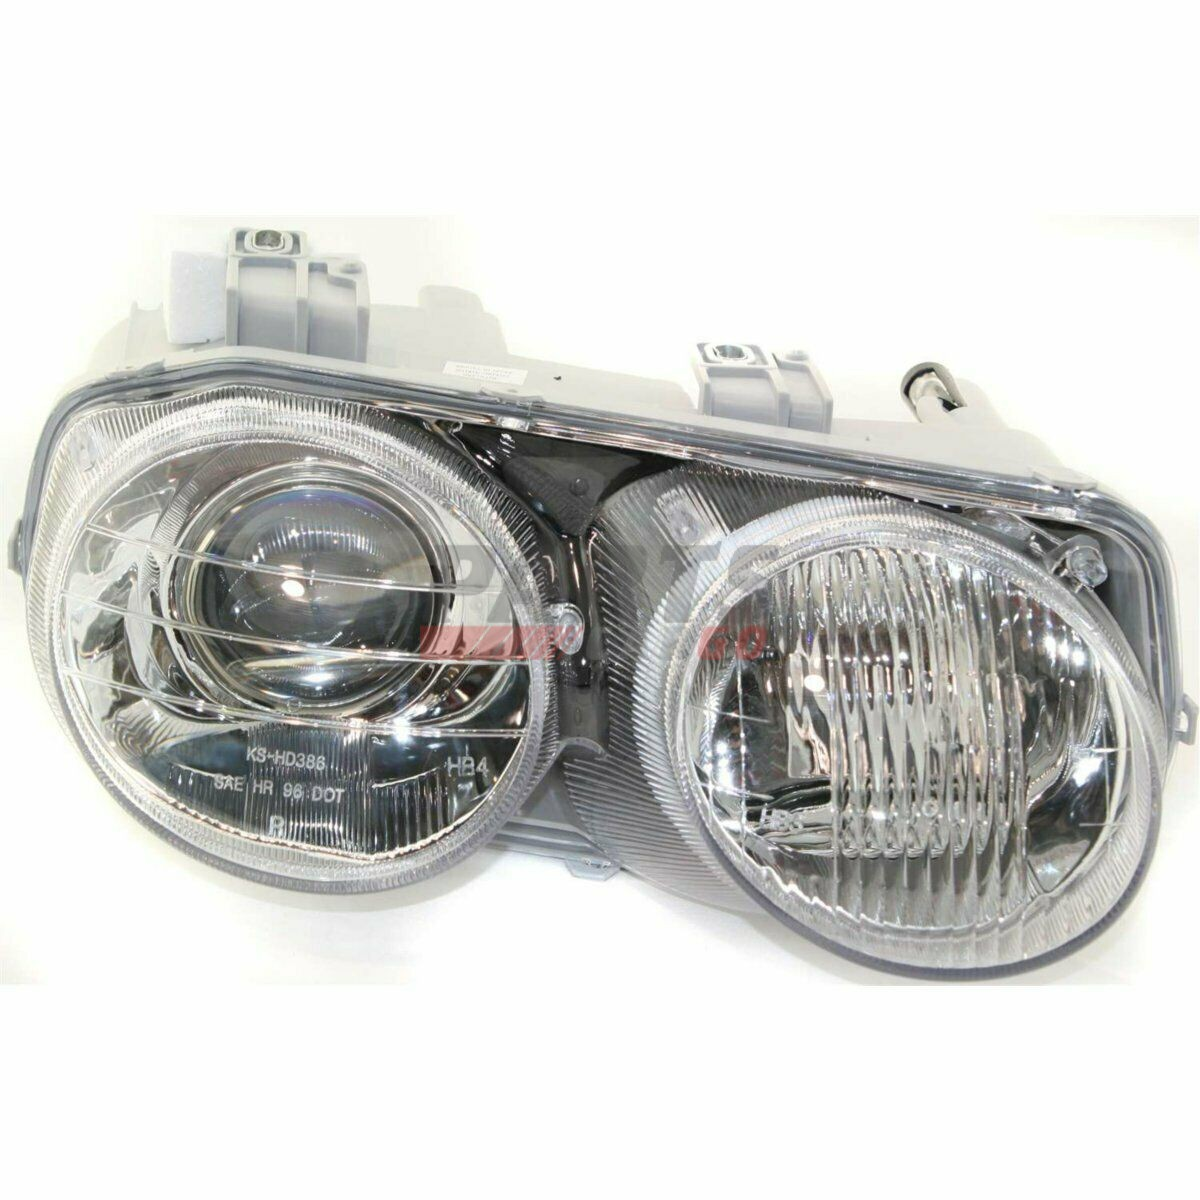 NEW HEAD LAMP LENS AND HOUSING RIGHT FITS 1998-2001 ACURA